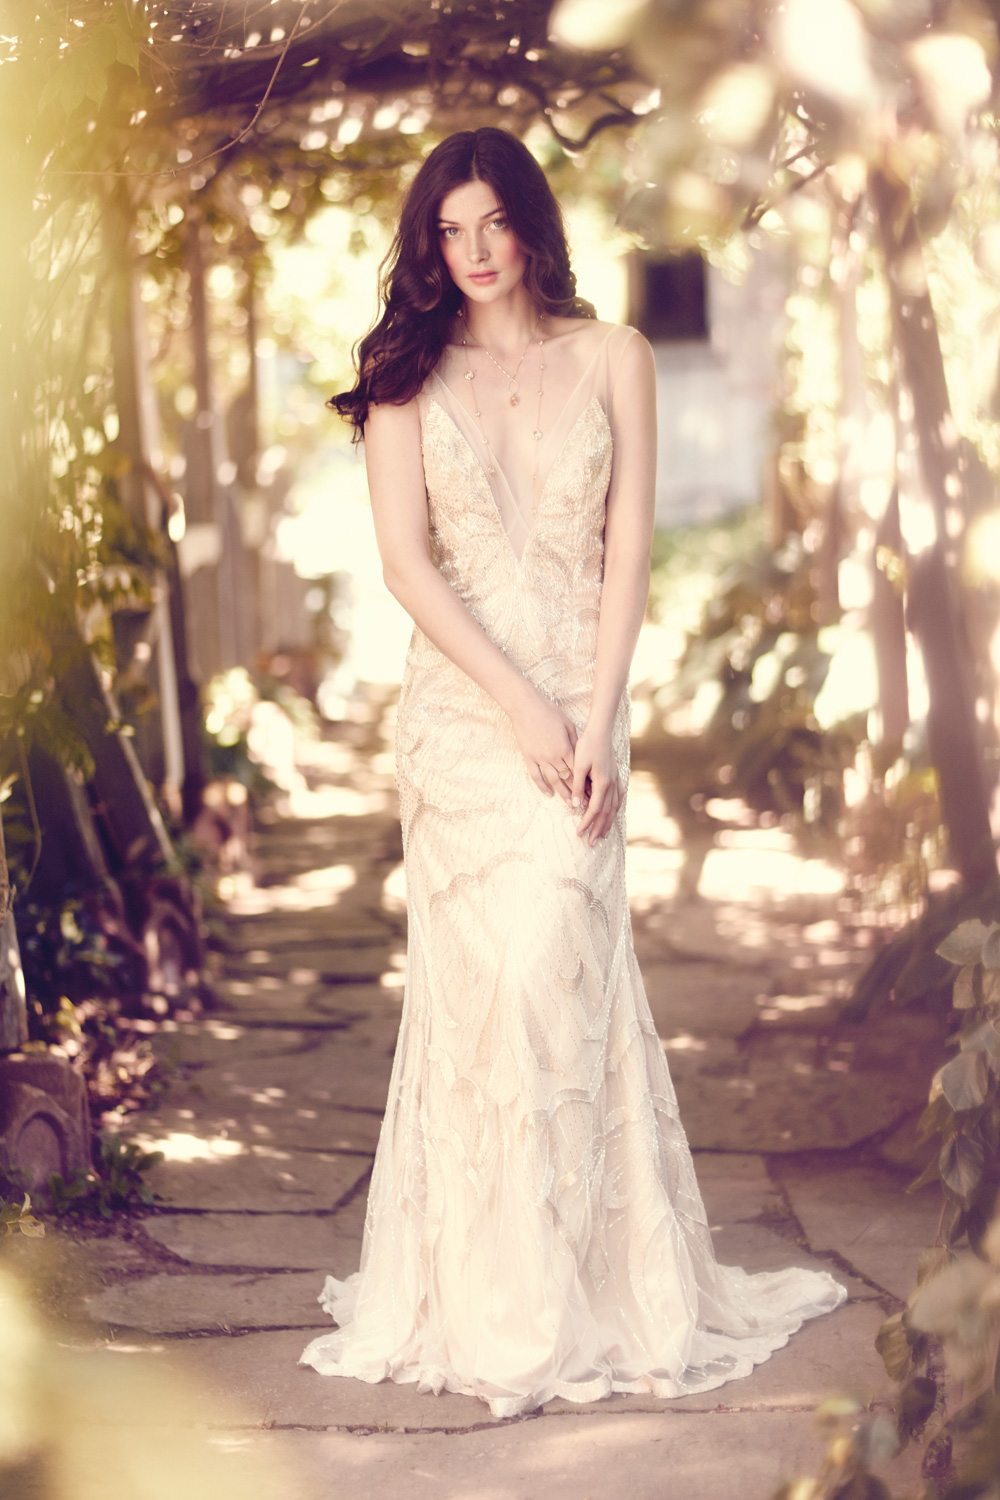 Ethereal Bridal Gowns For The Ultimate Boho Wedding | Weddingbells